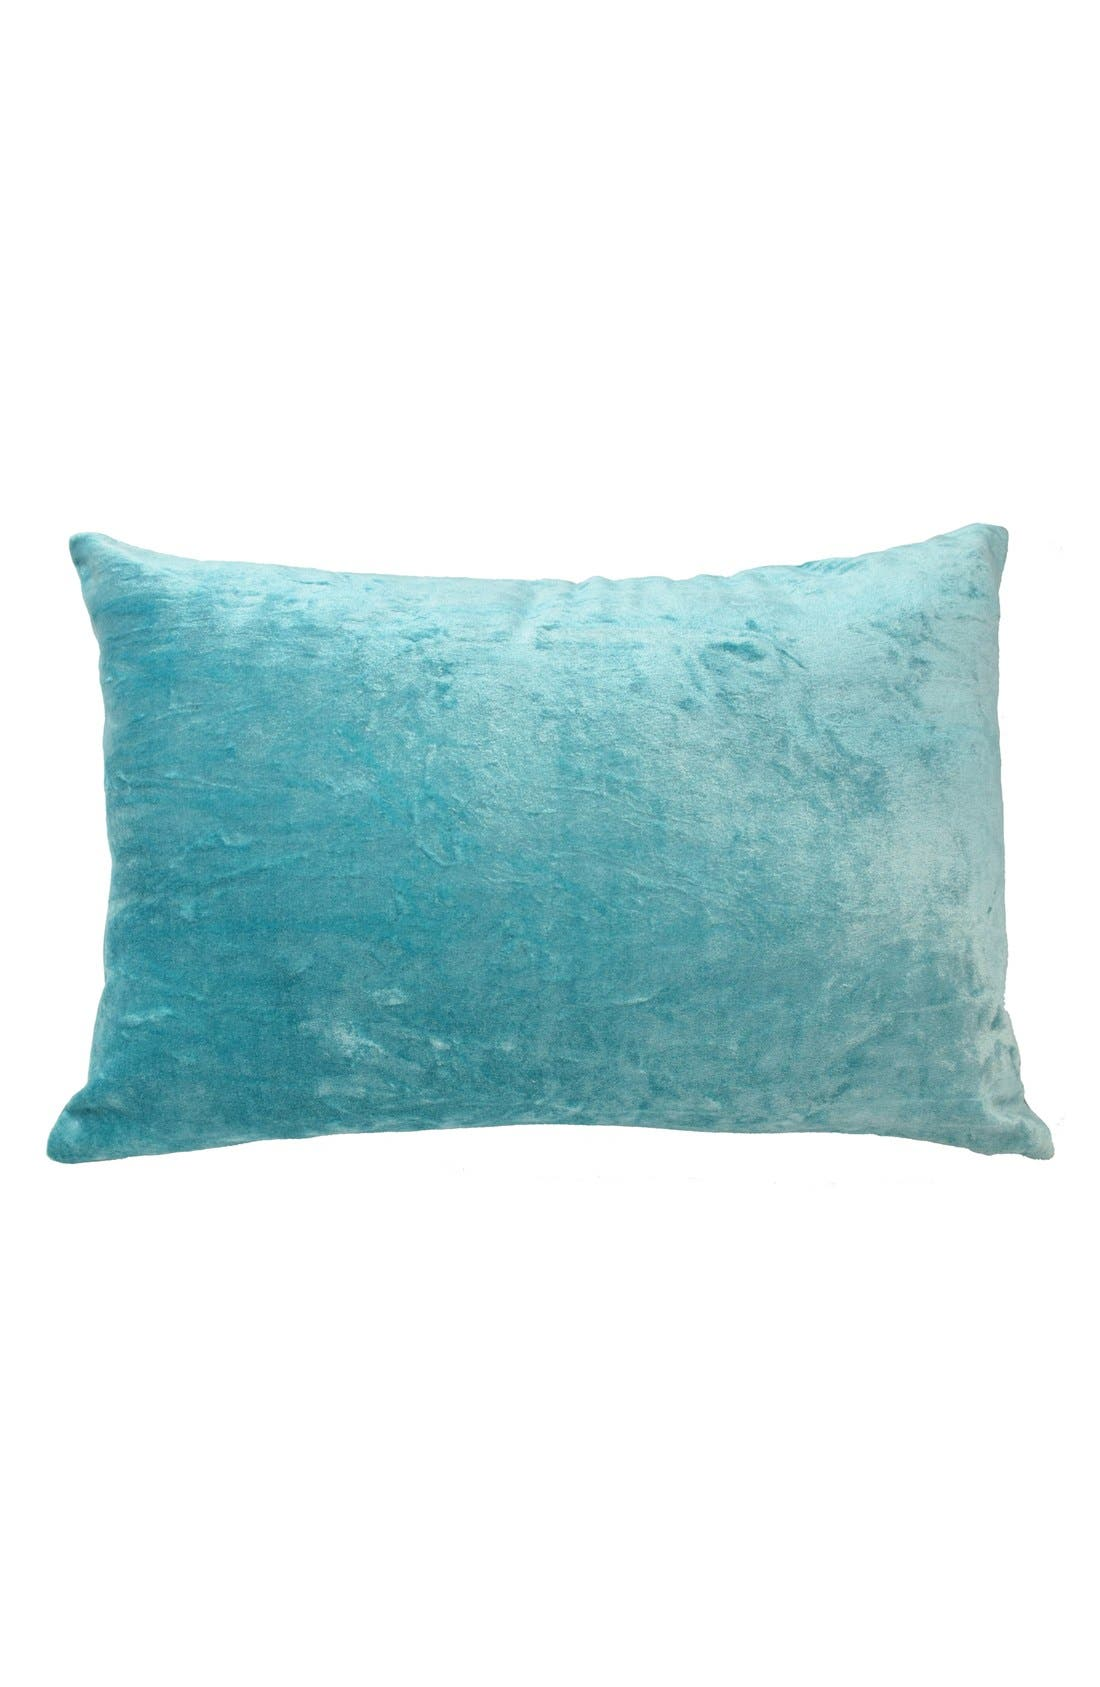 Blissliving Home 'Feliz' Pillow